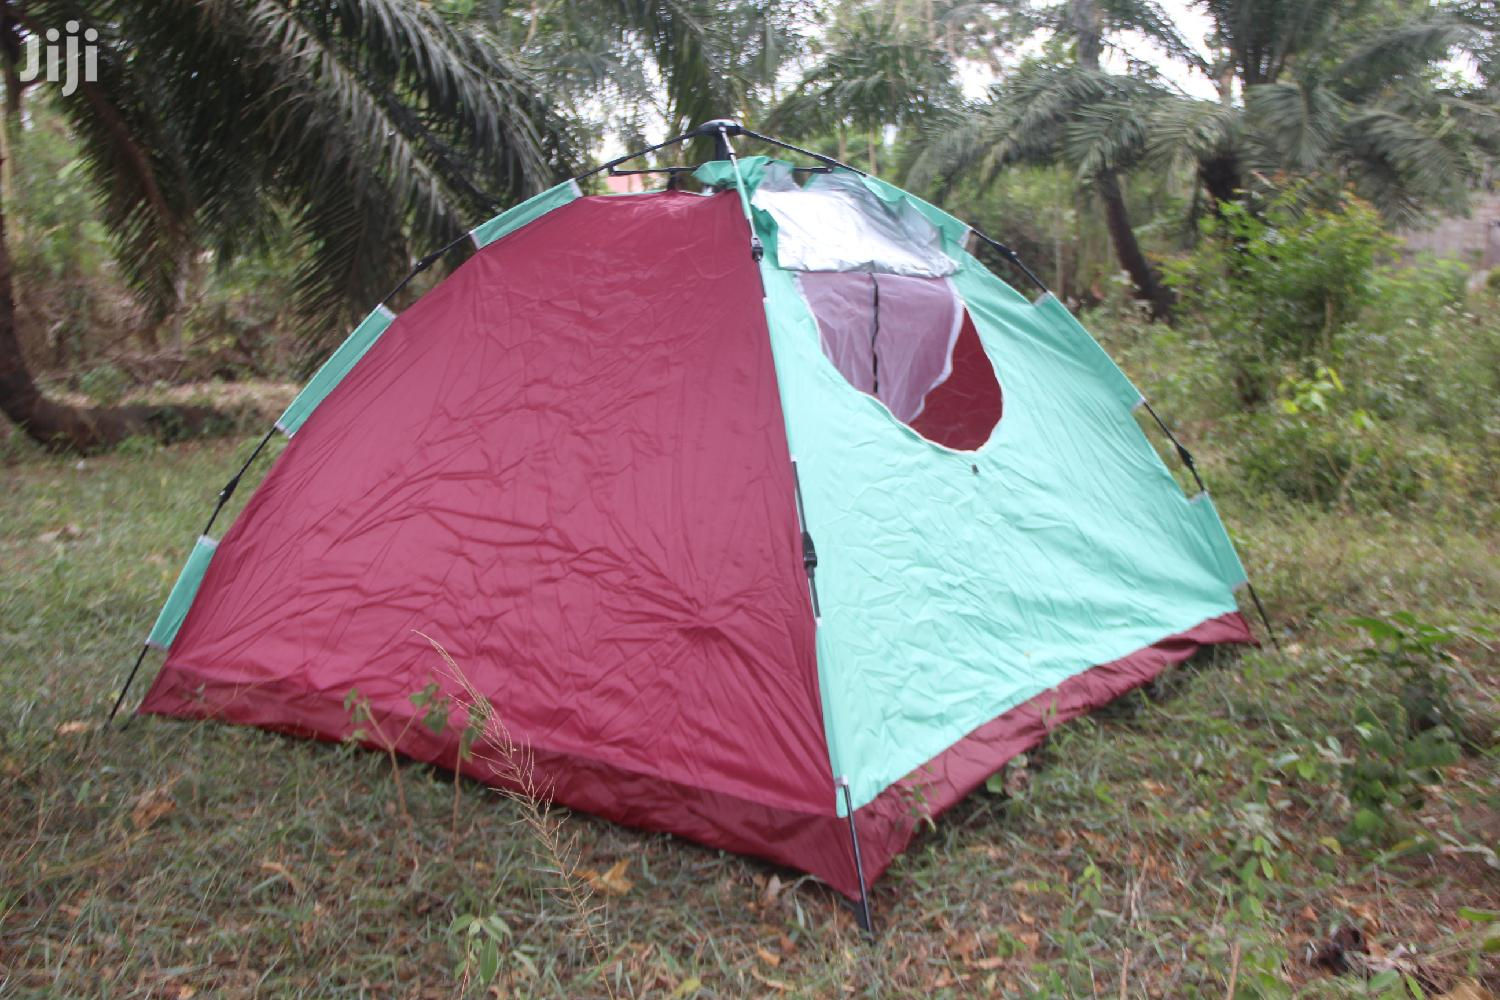 Outdoor Camping Tent 4 People Automatic   Camping Gear for sale in Ilala, Dar es Salaam, Tanzania